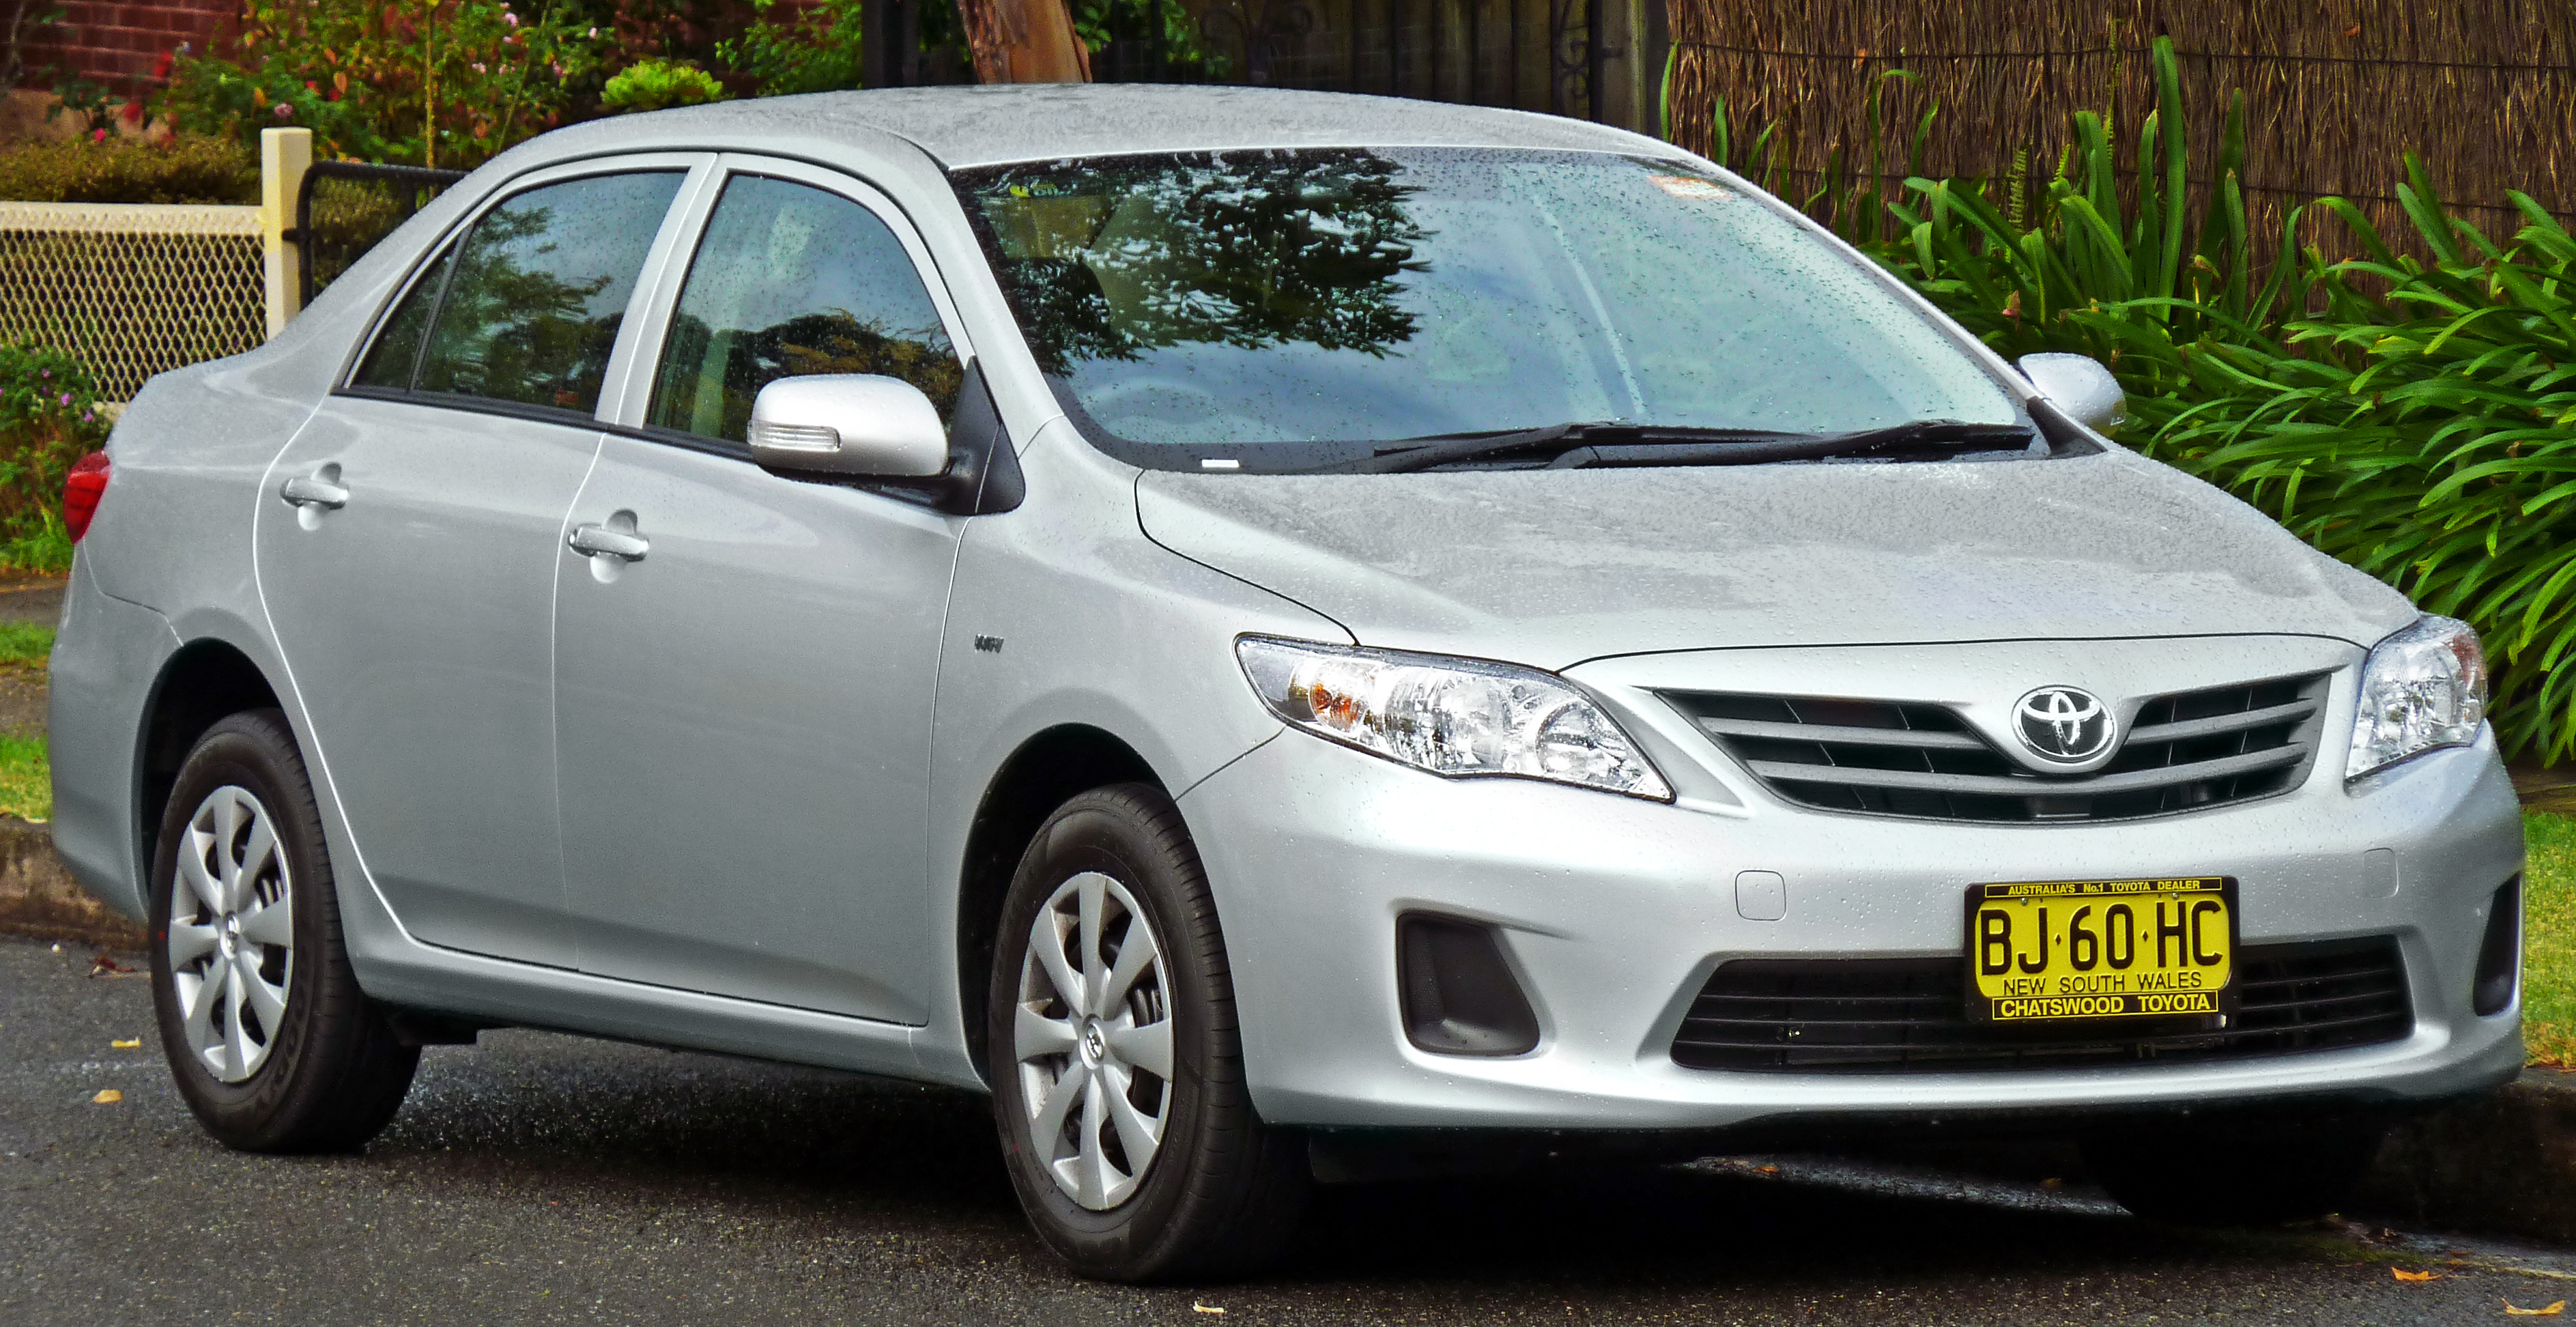 Toyota Venza Used Car For Sale